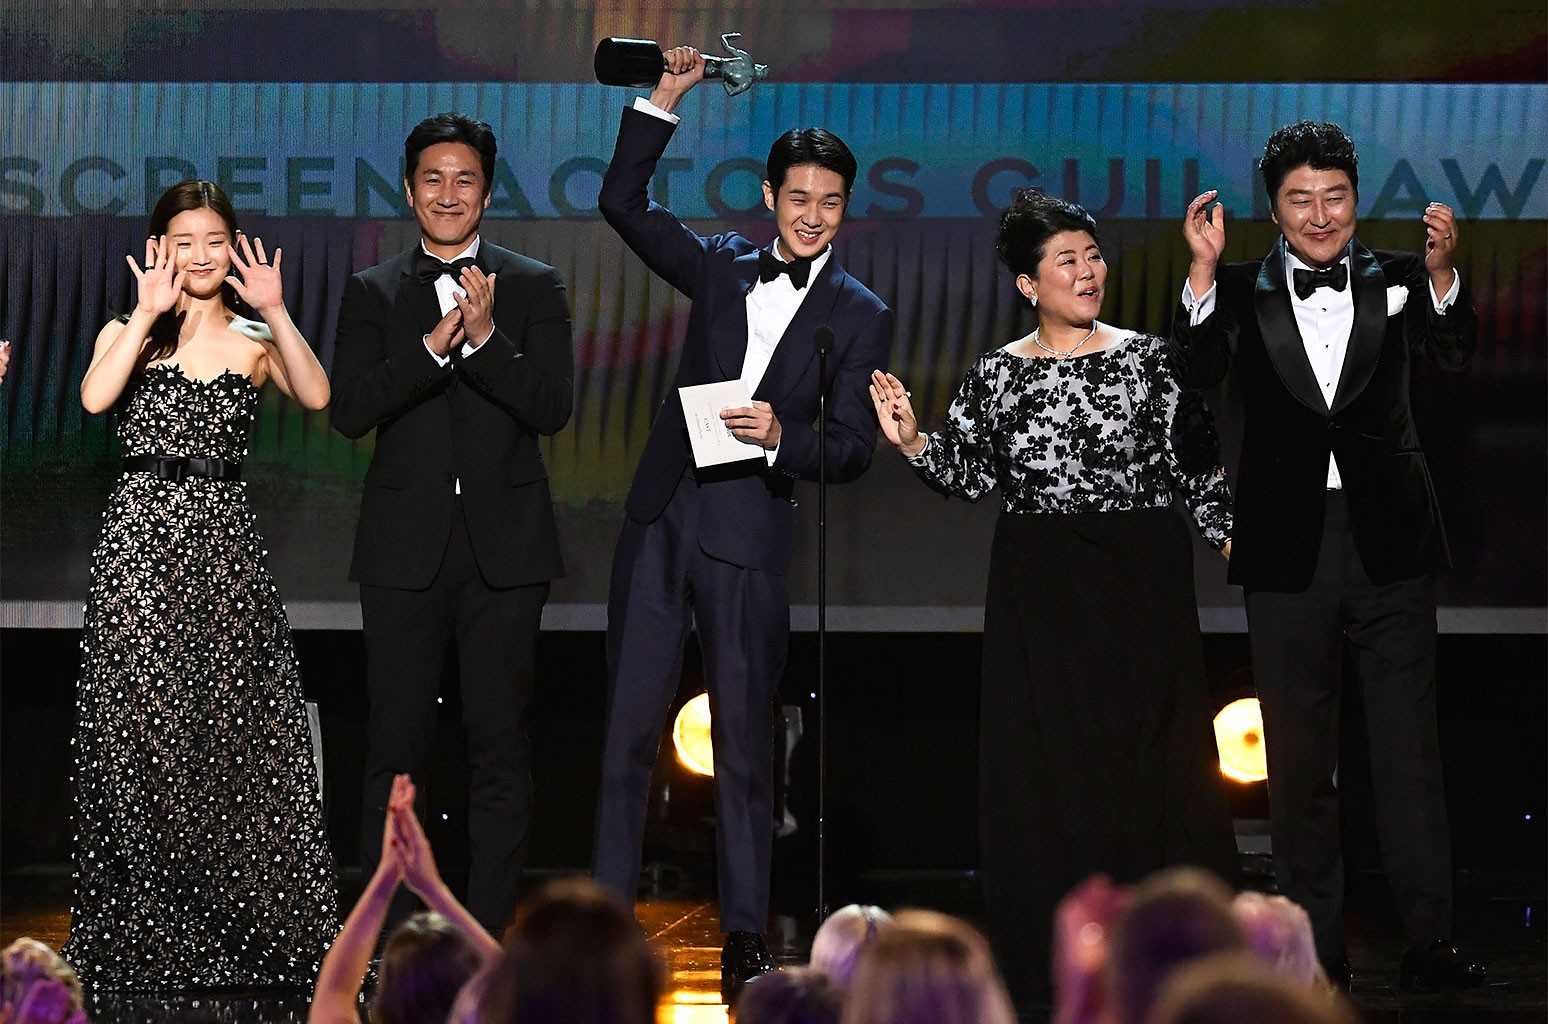 So-dam Park, Sun-kyun Lee, Woo-sik Choi, Jeong-eun Lee, and Kang-ho Song accept Outstanding Performance by a Cast in a Motion Picture for 'Parasite' onstage during the 26th Annual Screen Actors Guild Awards at The Shrine Auditorium on Jan. 19, 2020 in Los